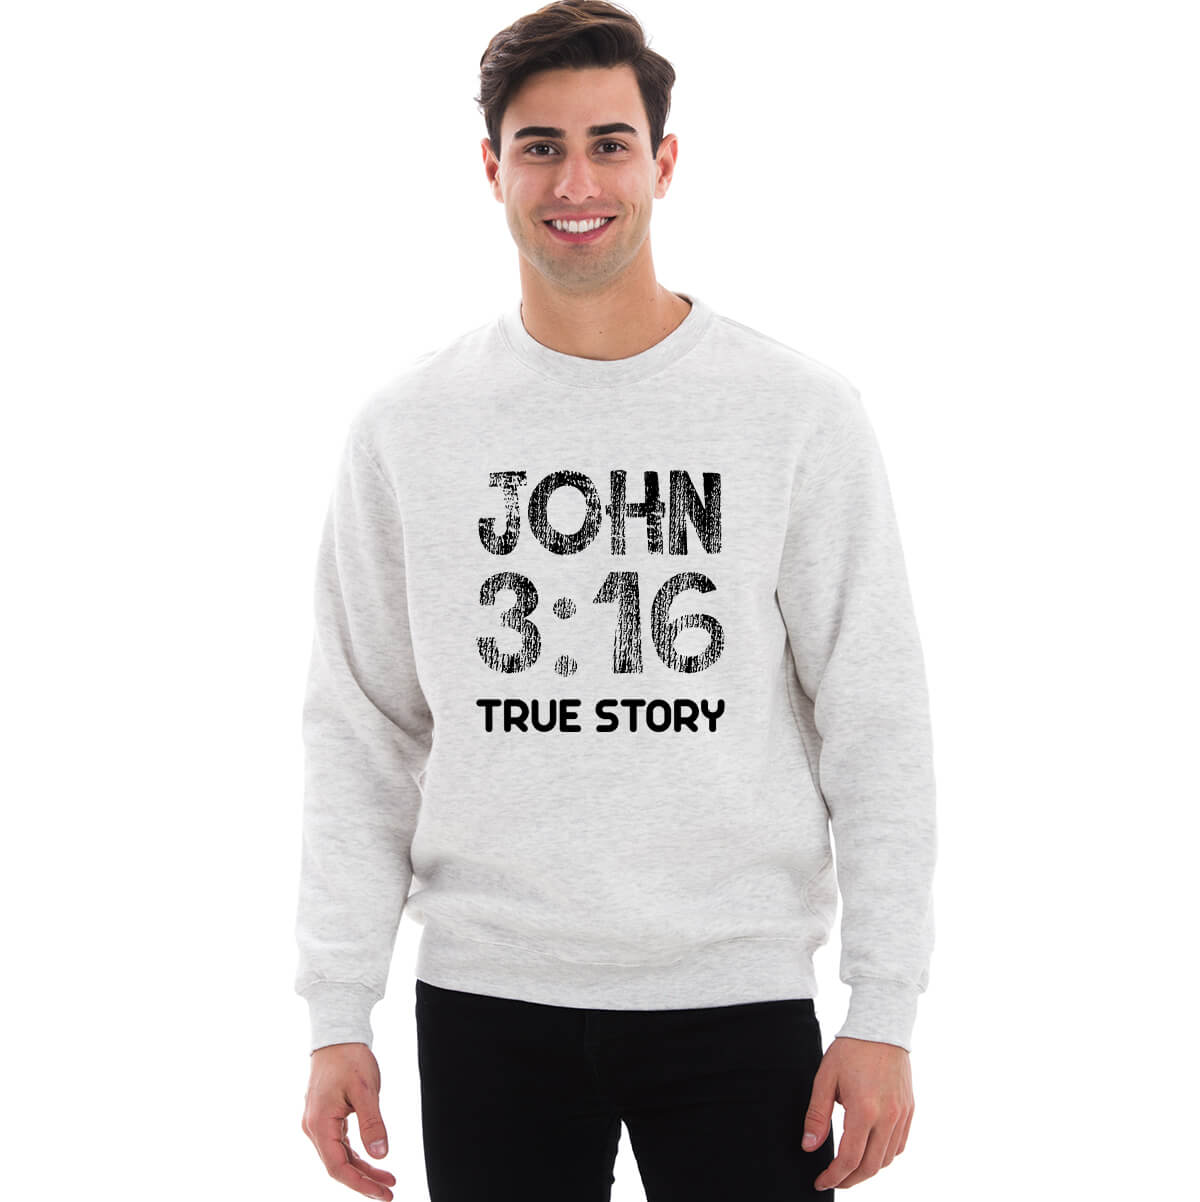 John 3 16 True Story Unipremium Crewneck Fleece Sweatshirt